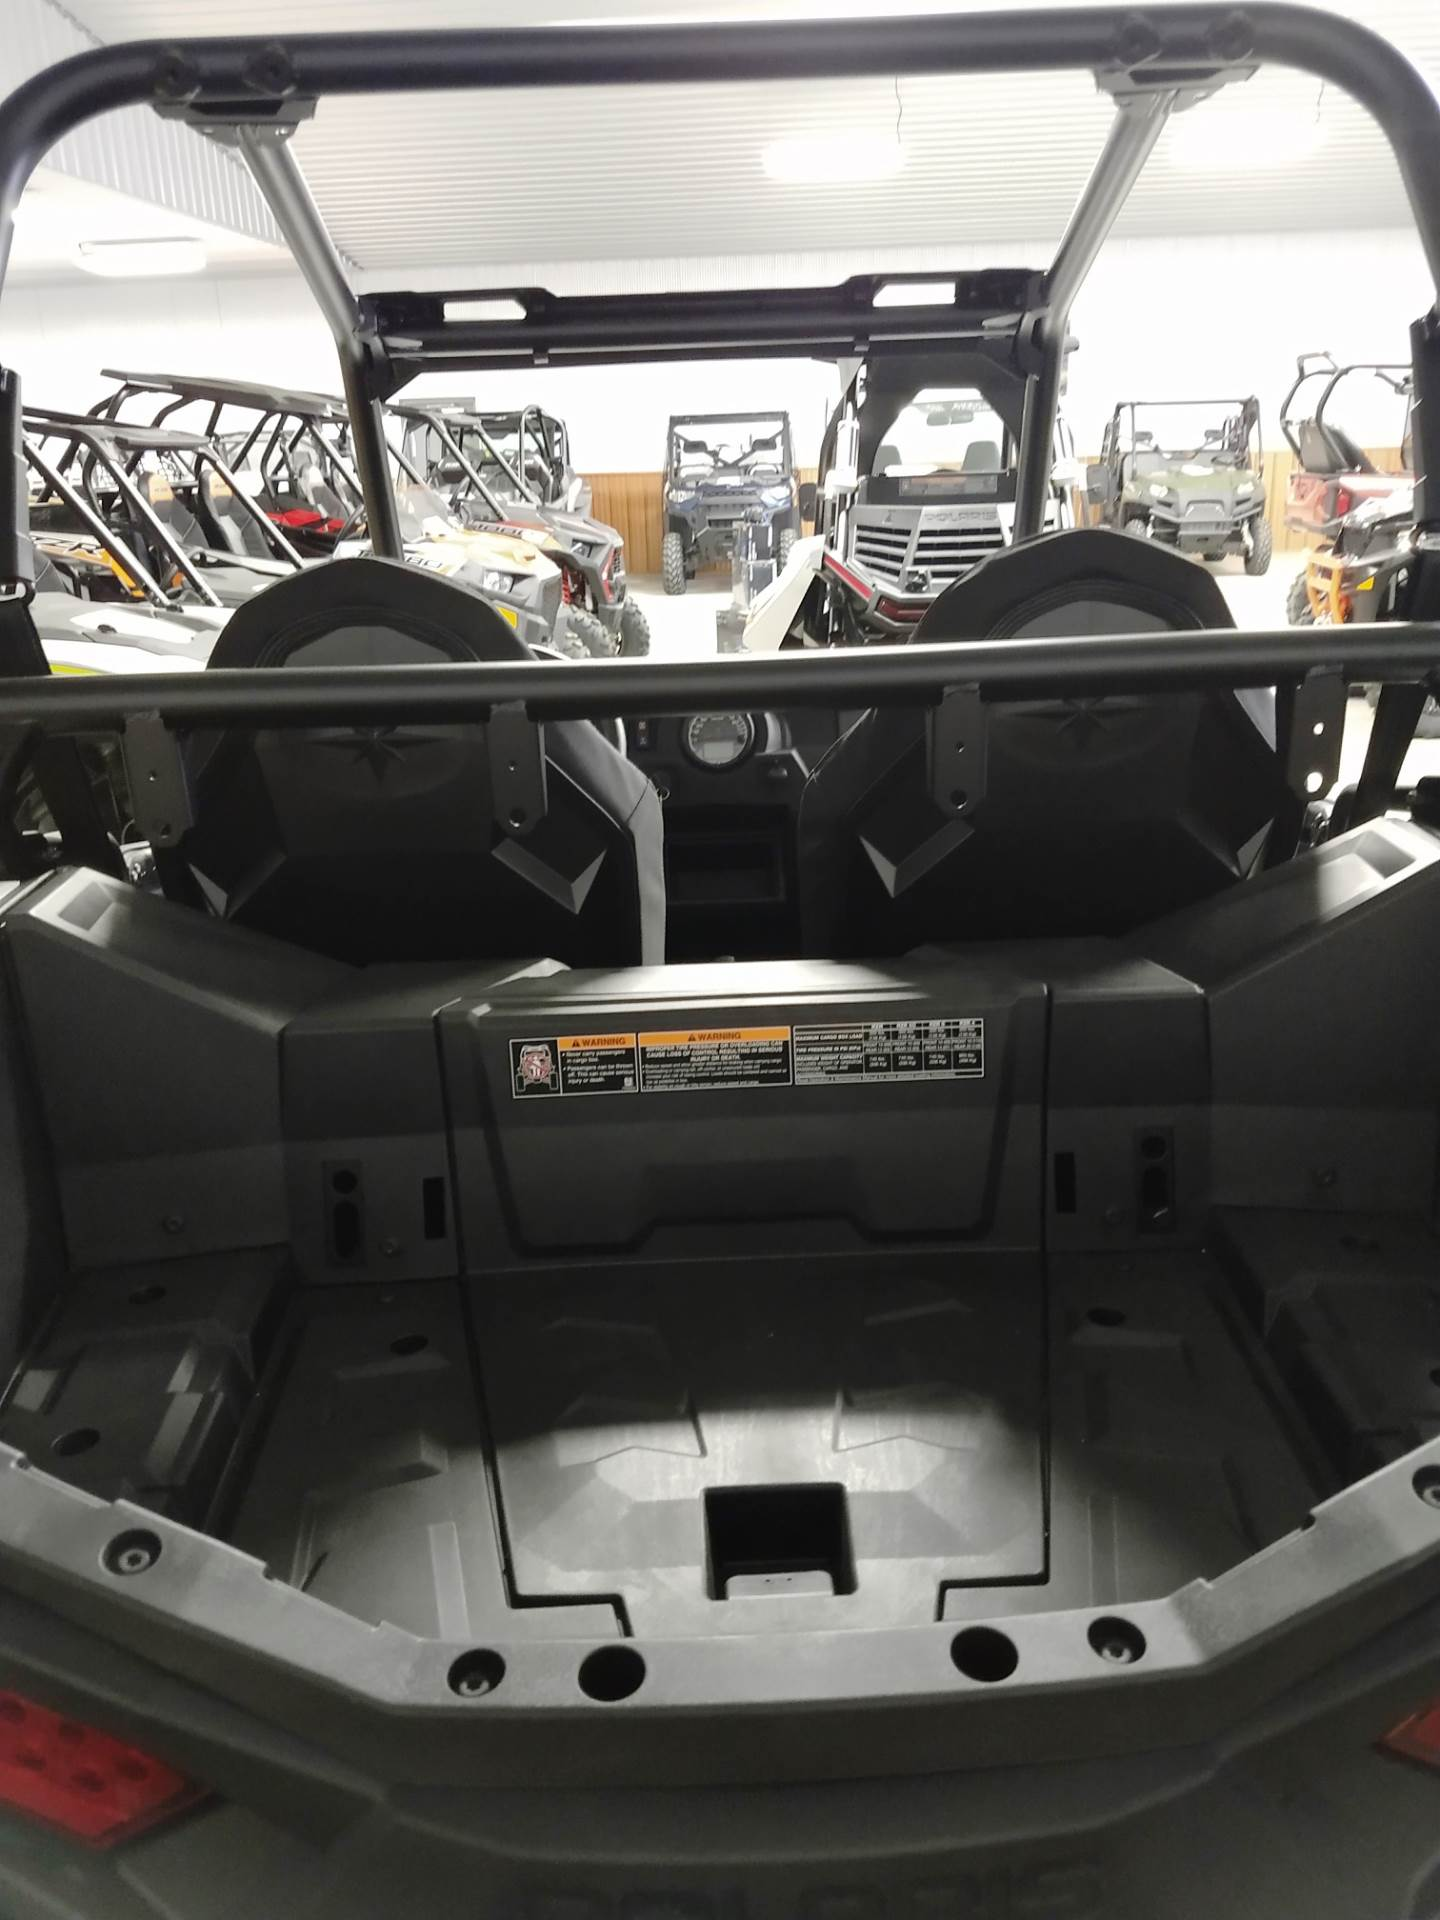 2019 Polaris RZR S 900 in Ottumwa, Iowa - Photo 7